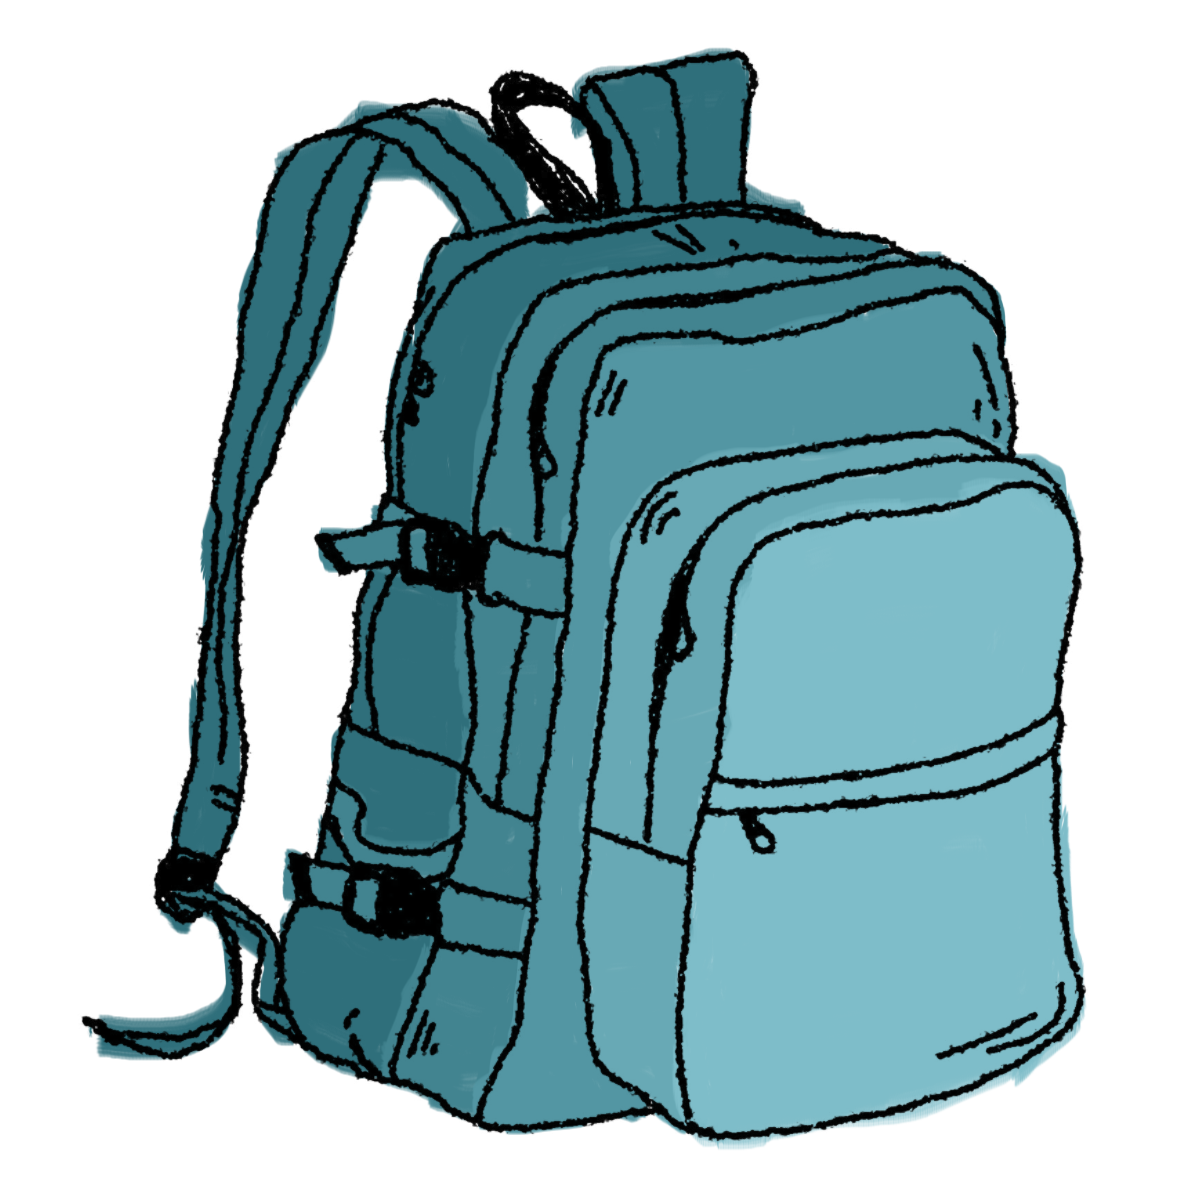 png library download Transparent background free on. Bookbag clipart empty backpack.